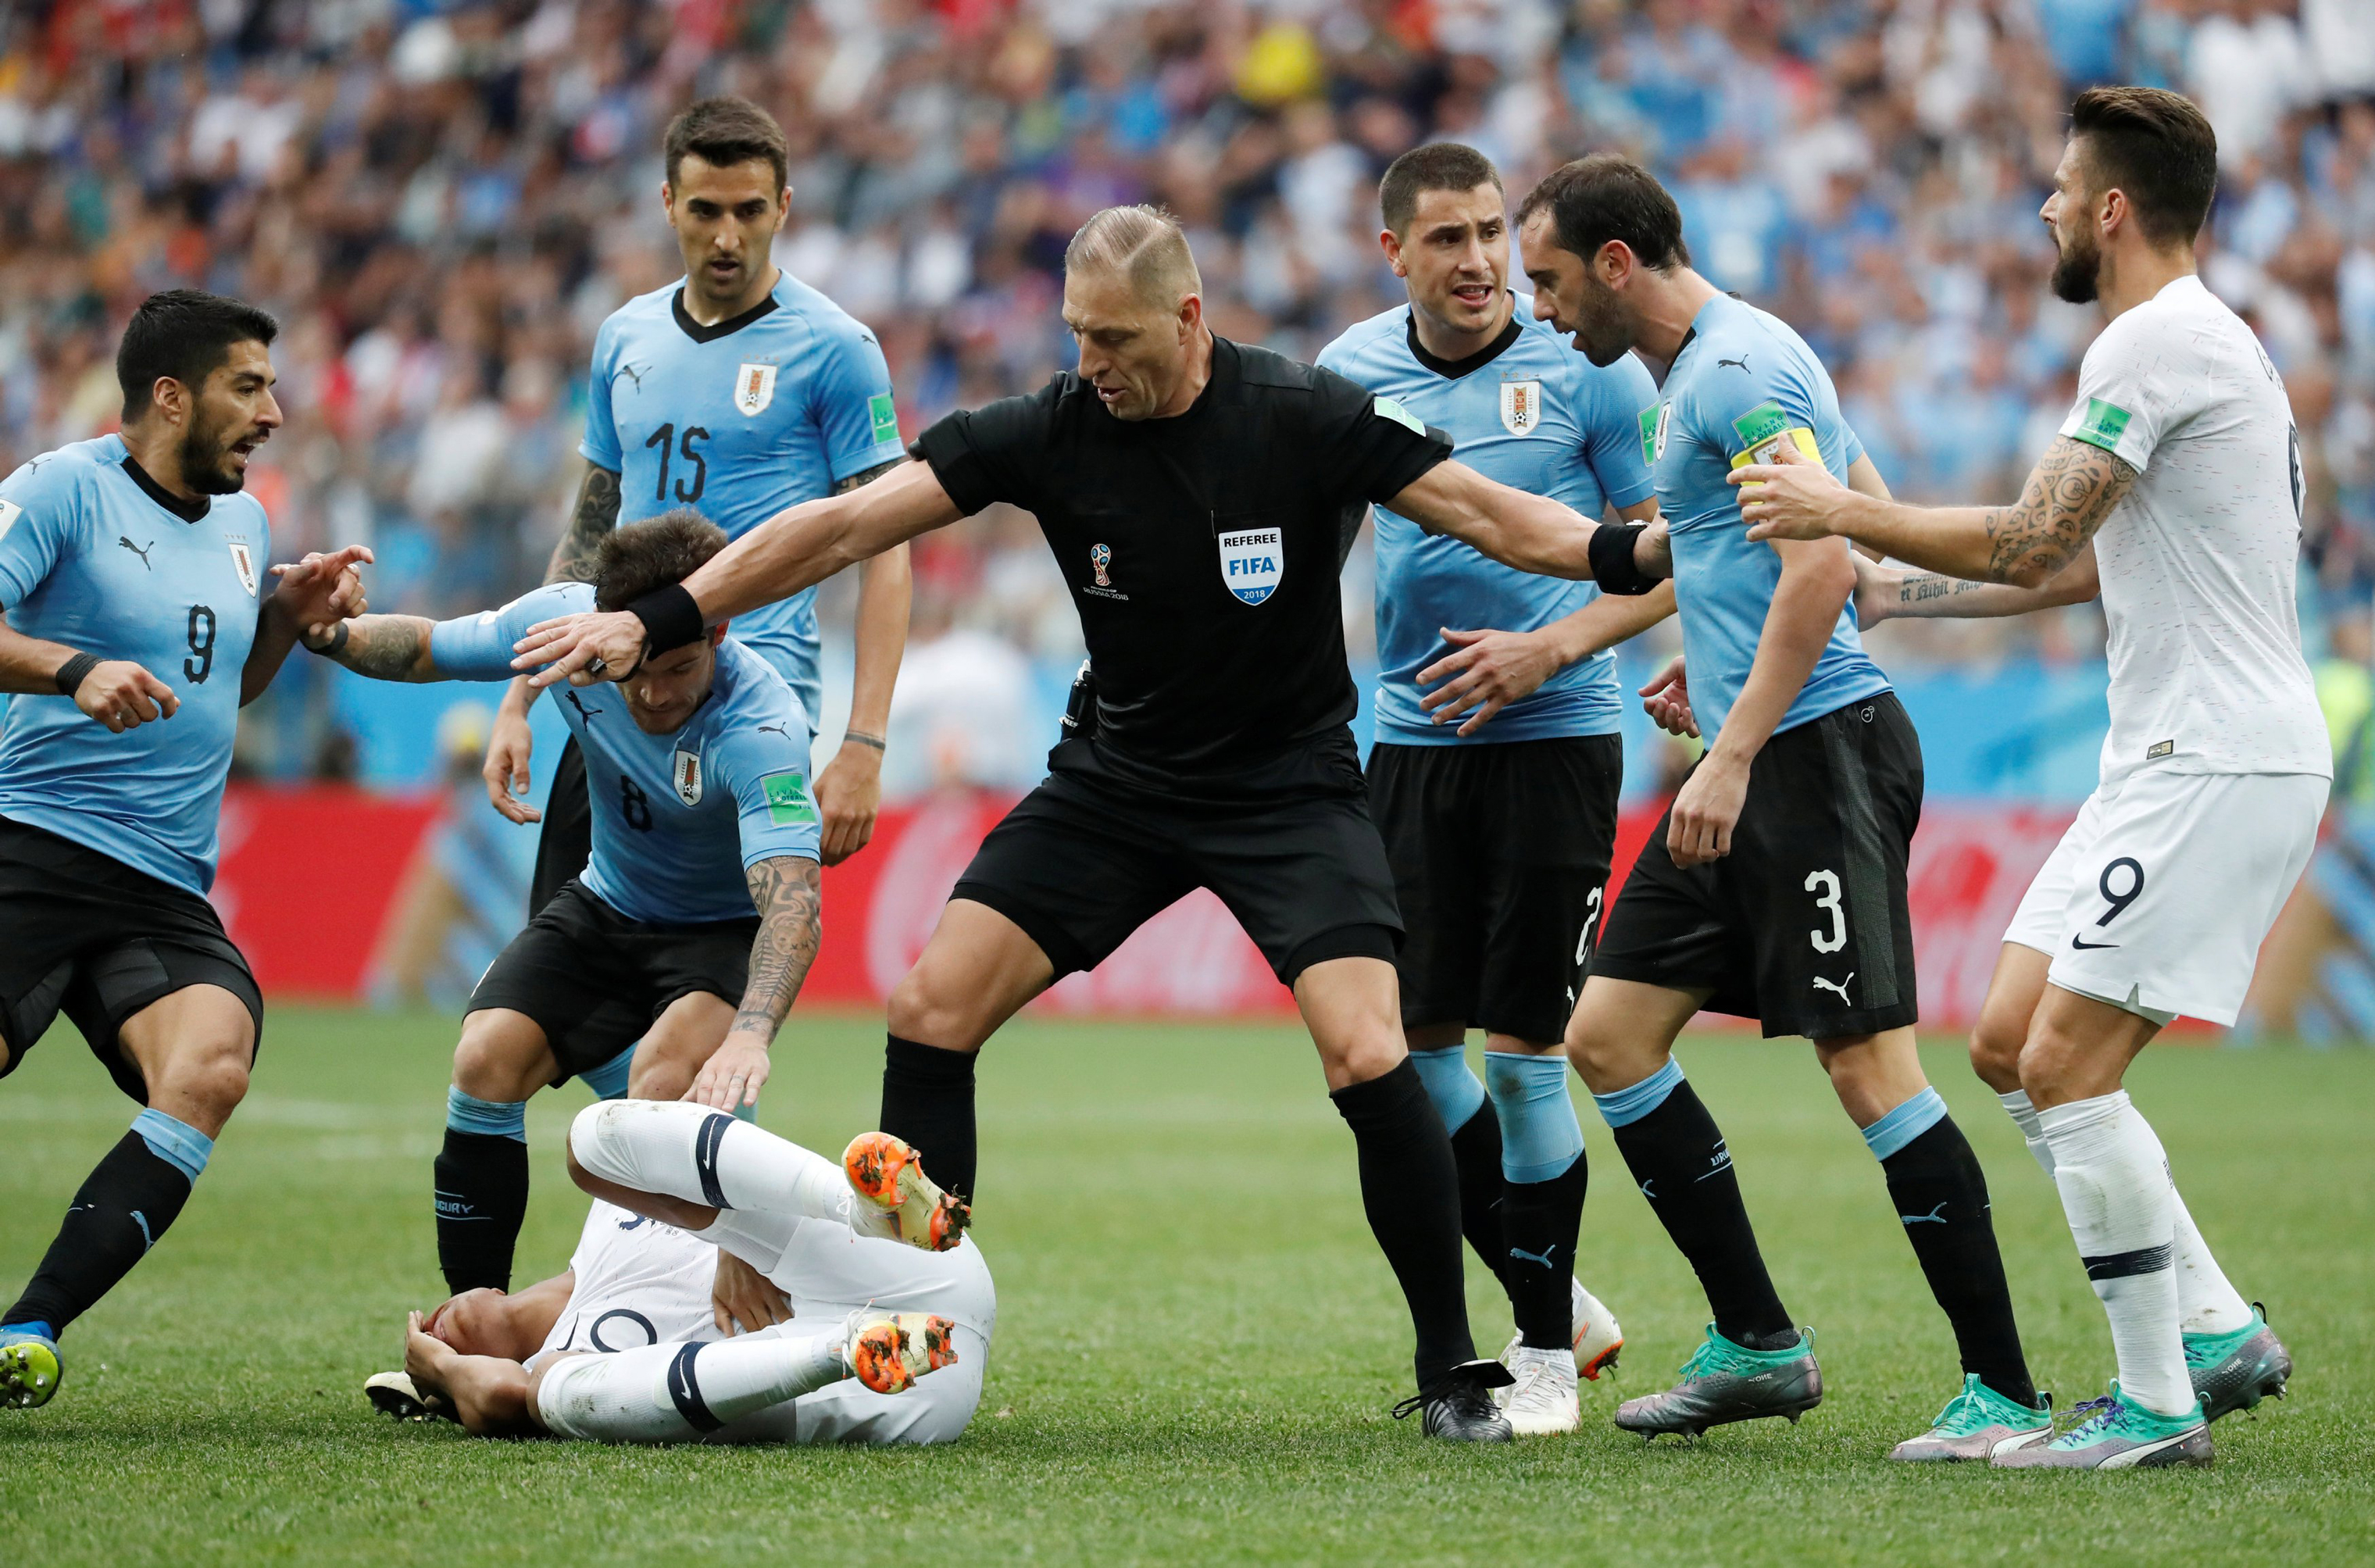 Referee Nestor Pitana intervenes with Uruguay's Diego Godin after clashing with France's Kylian Mbappe on July 6, 2018.